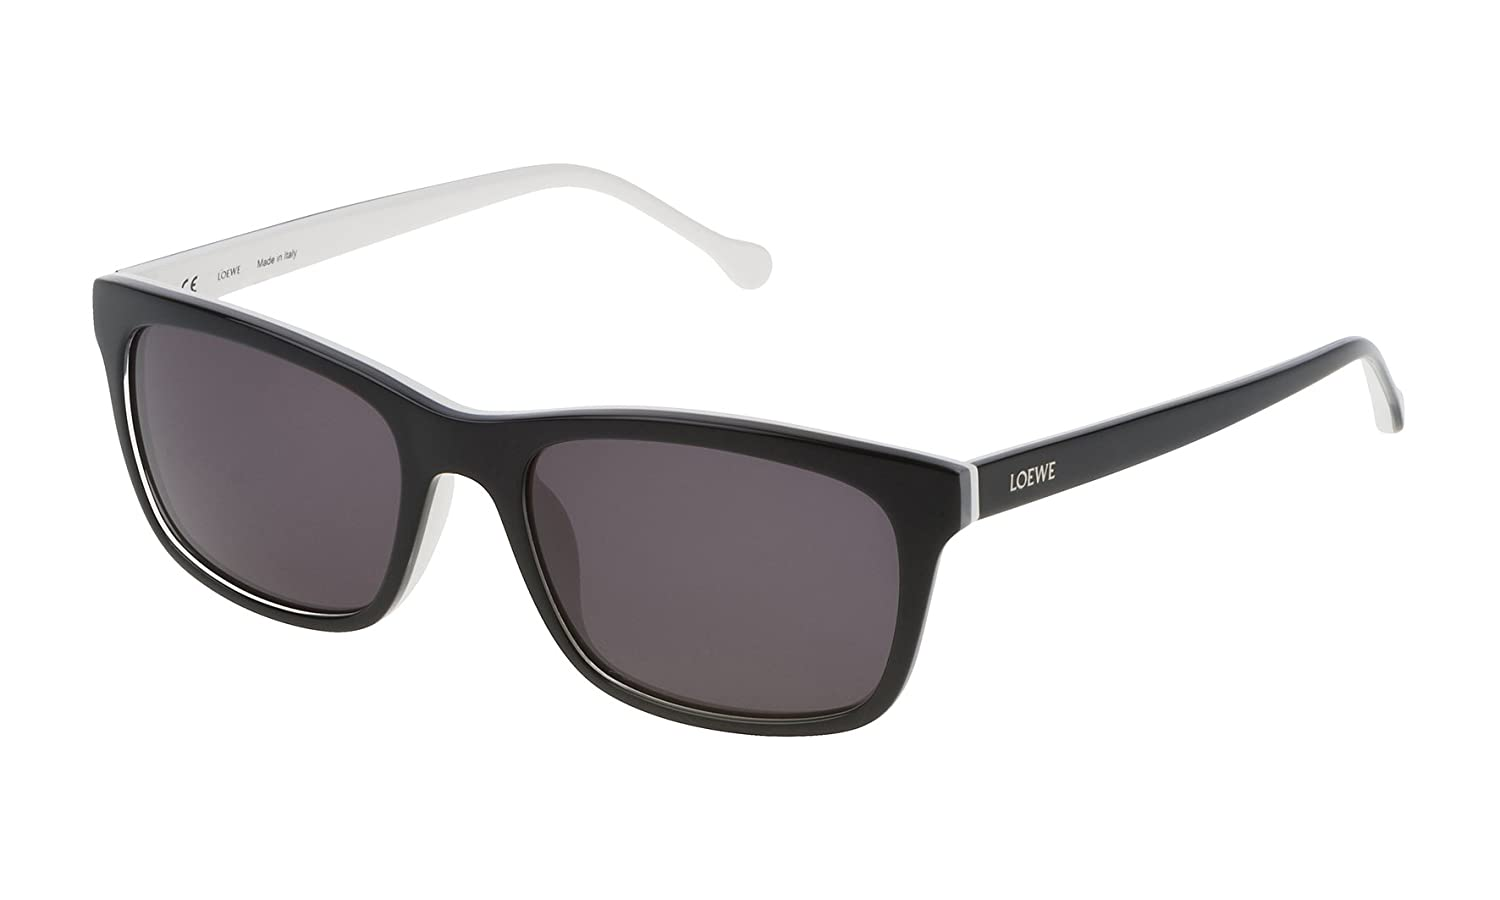 Loewe SLW941M5506MP Gafas de Sol, Black/White/Crystal, 55 ...